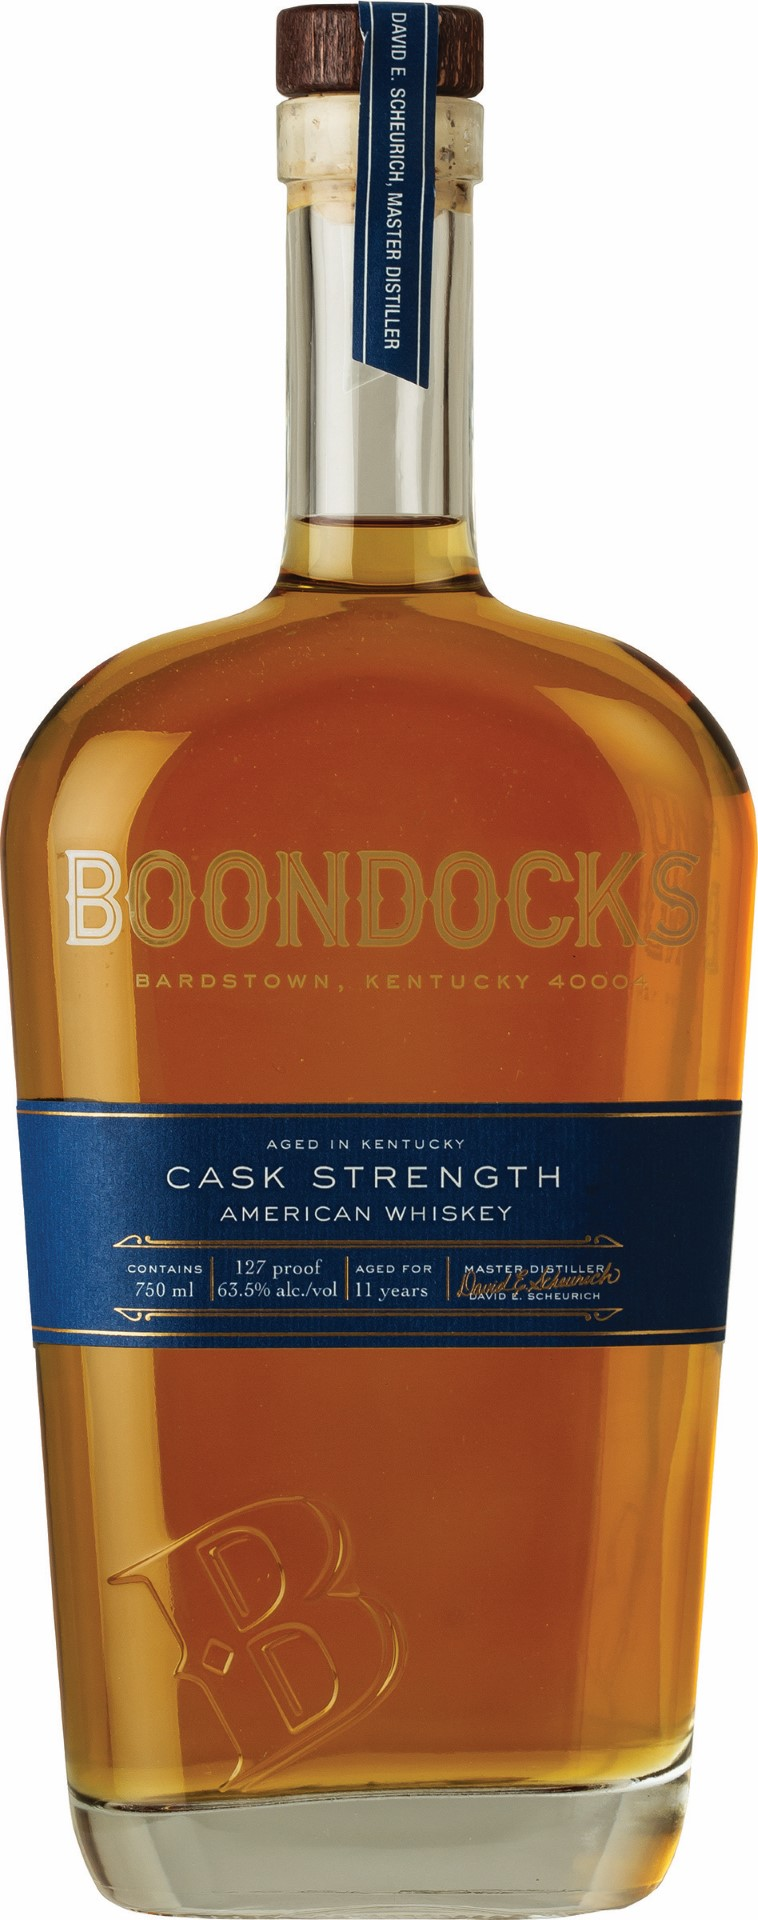 Boondocks Cask Strength American Whiskey